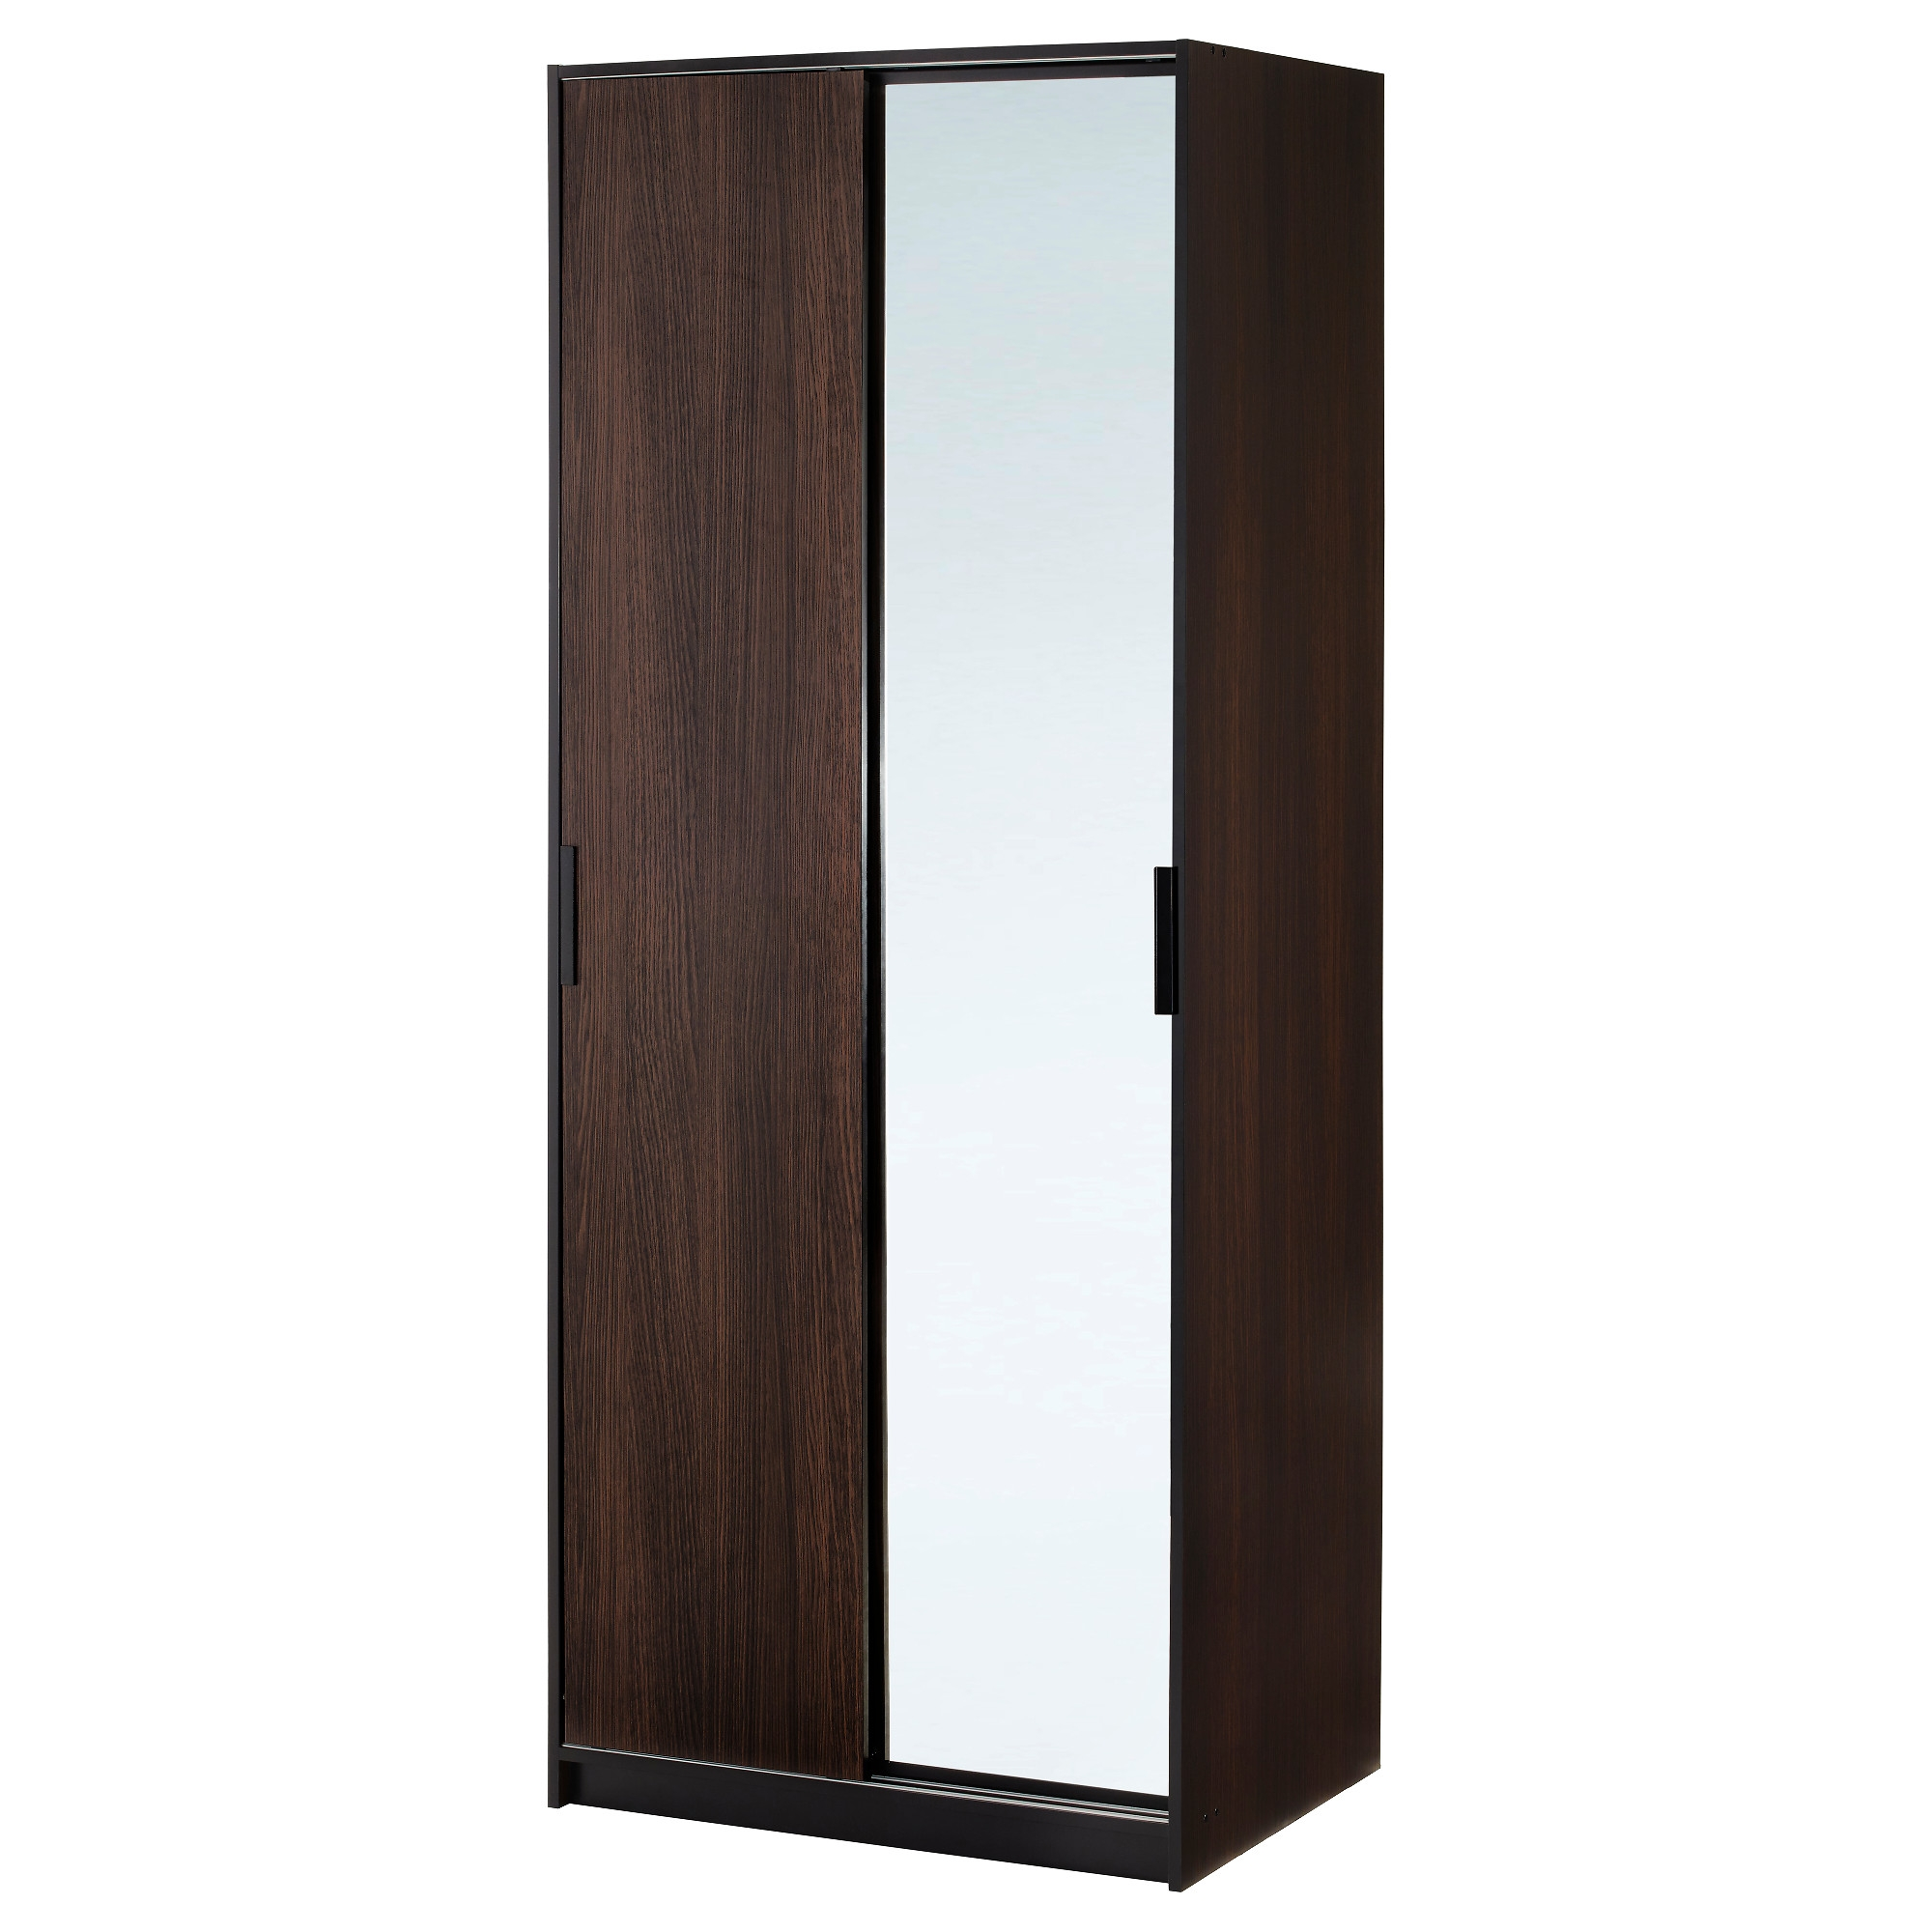 Wardrobes Armoires Closets Ikea Pertaining To Dark Wood Wardrobes (View 15 of 15)